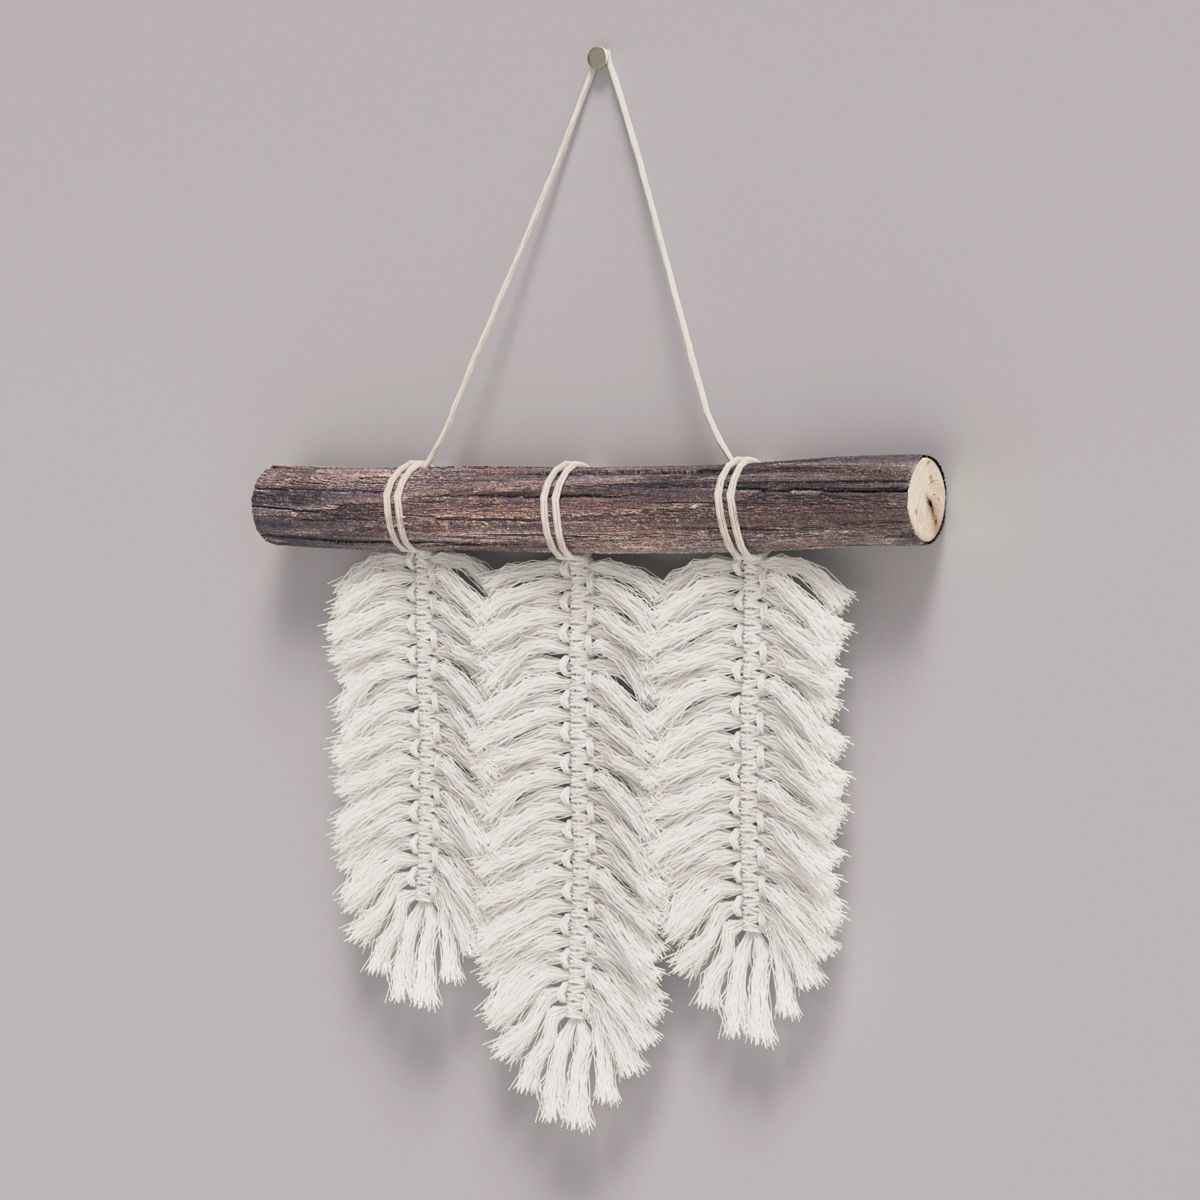 Small Macrame Wall Hanging Feathers | 3D model